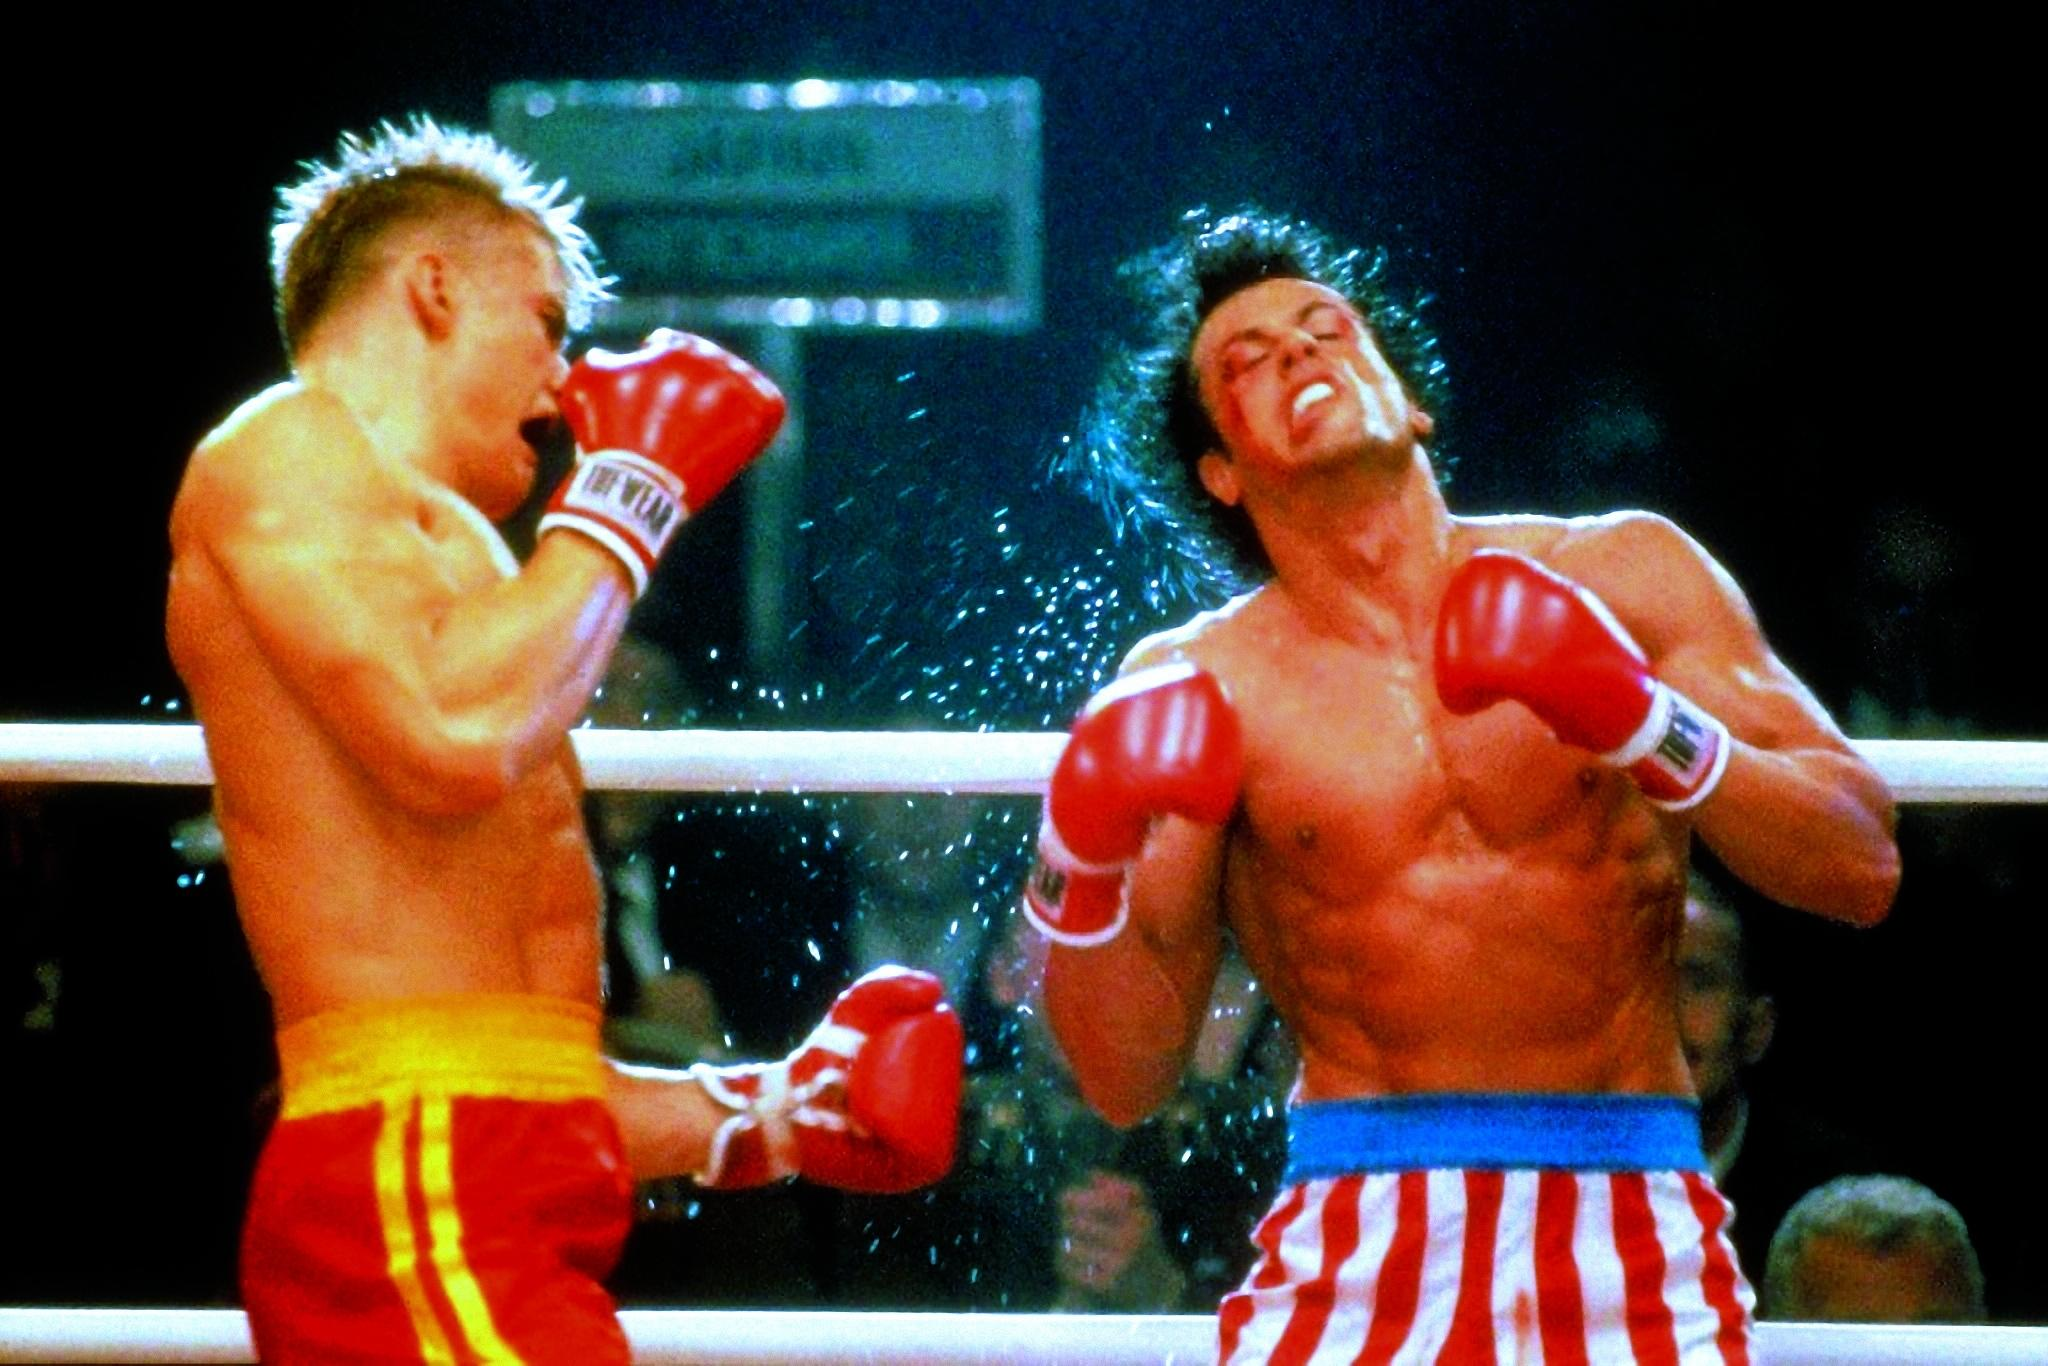 Dutch legend van Barneveld has quoted fictional boxing character Rocky Balboa as he revealed his retirement plans